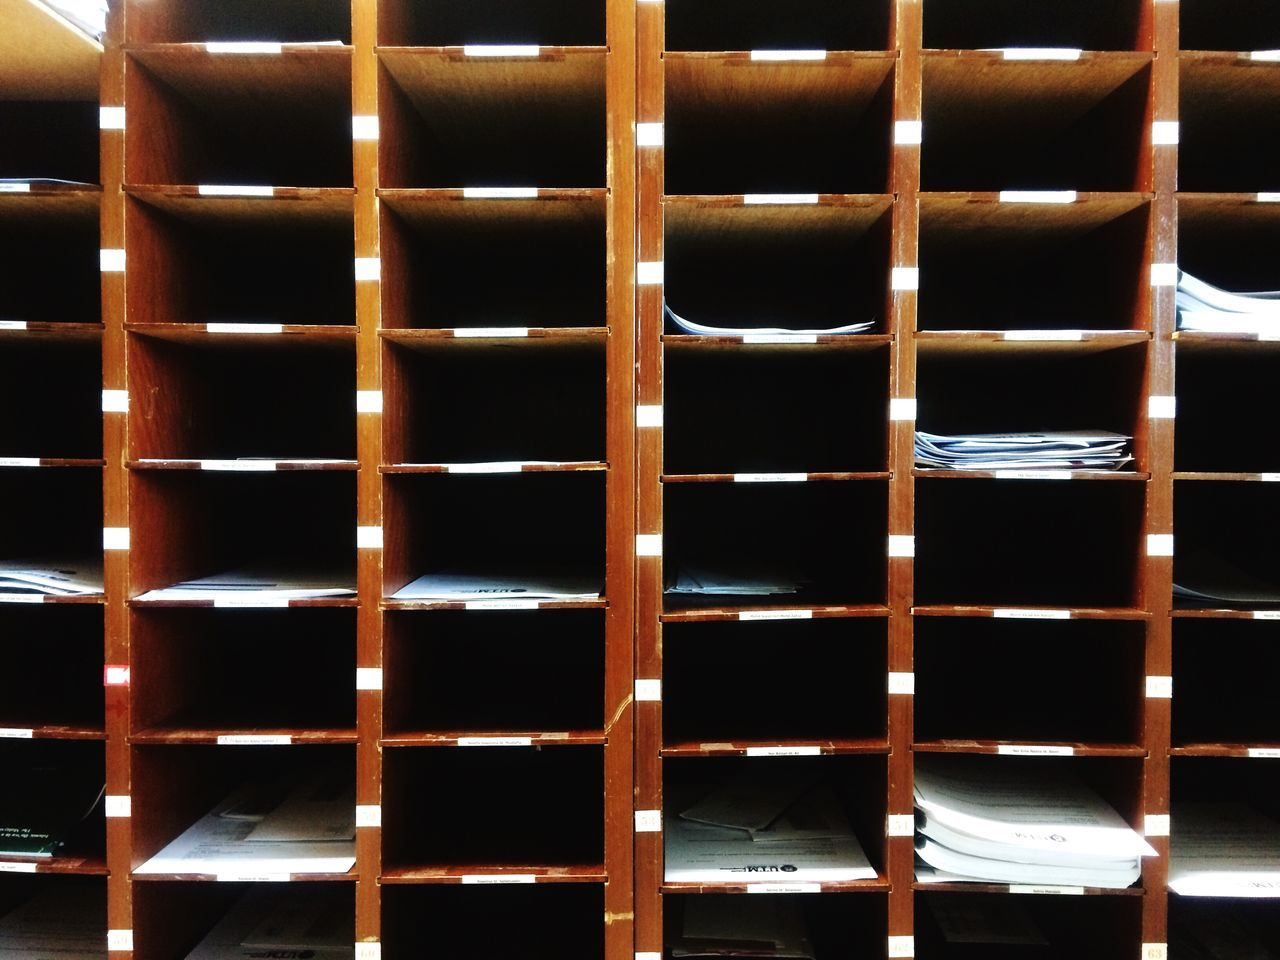 in a row, indoors, shelf, no people, wine, full frame, cellar, large group of objects, backgrounds, alcohol, wine rack, close-up, day